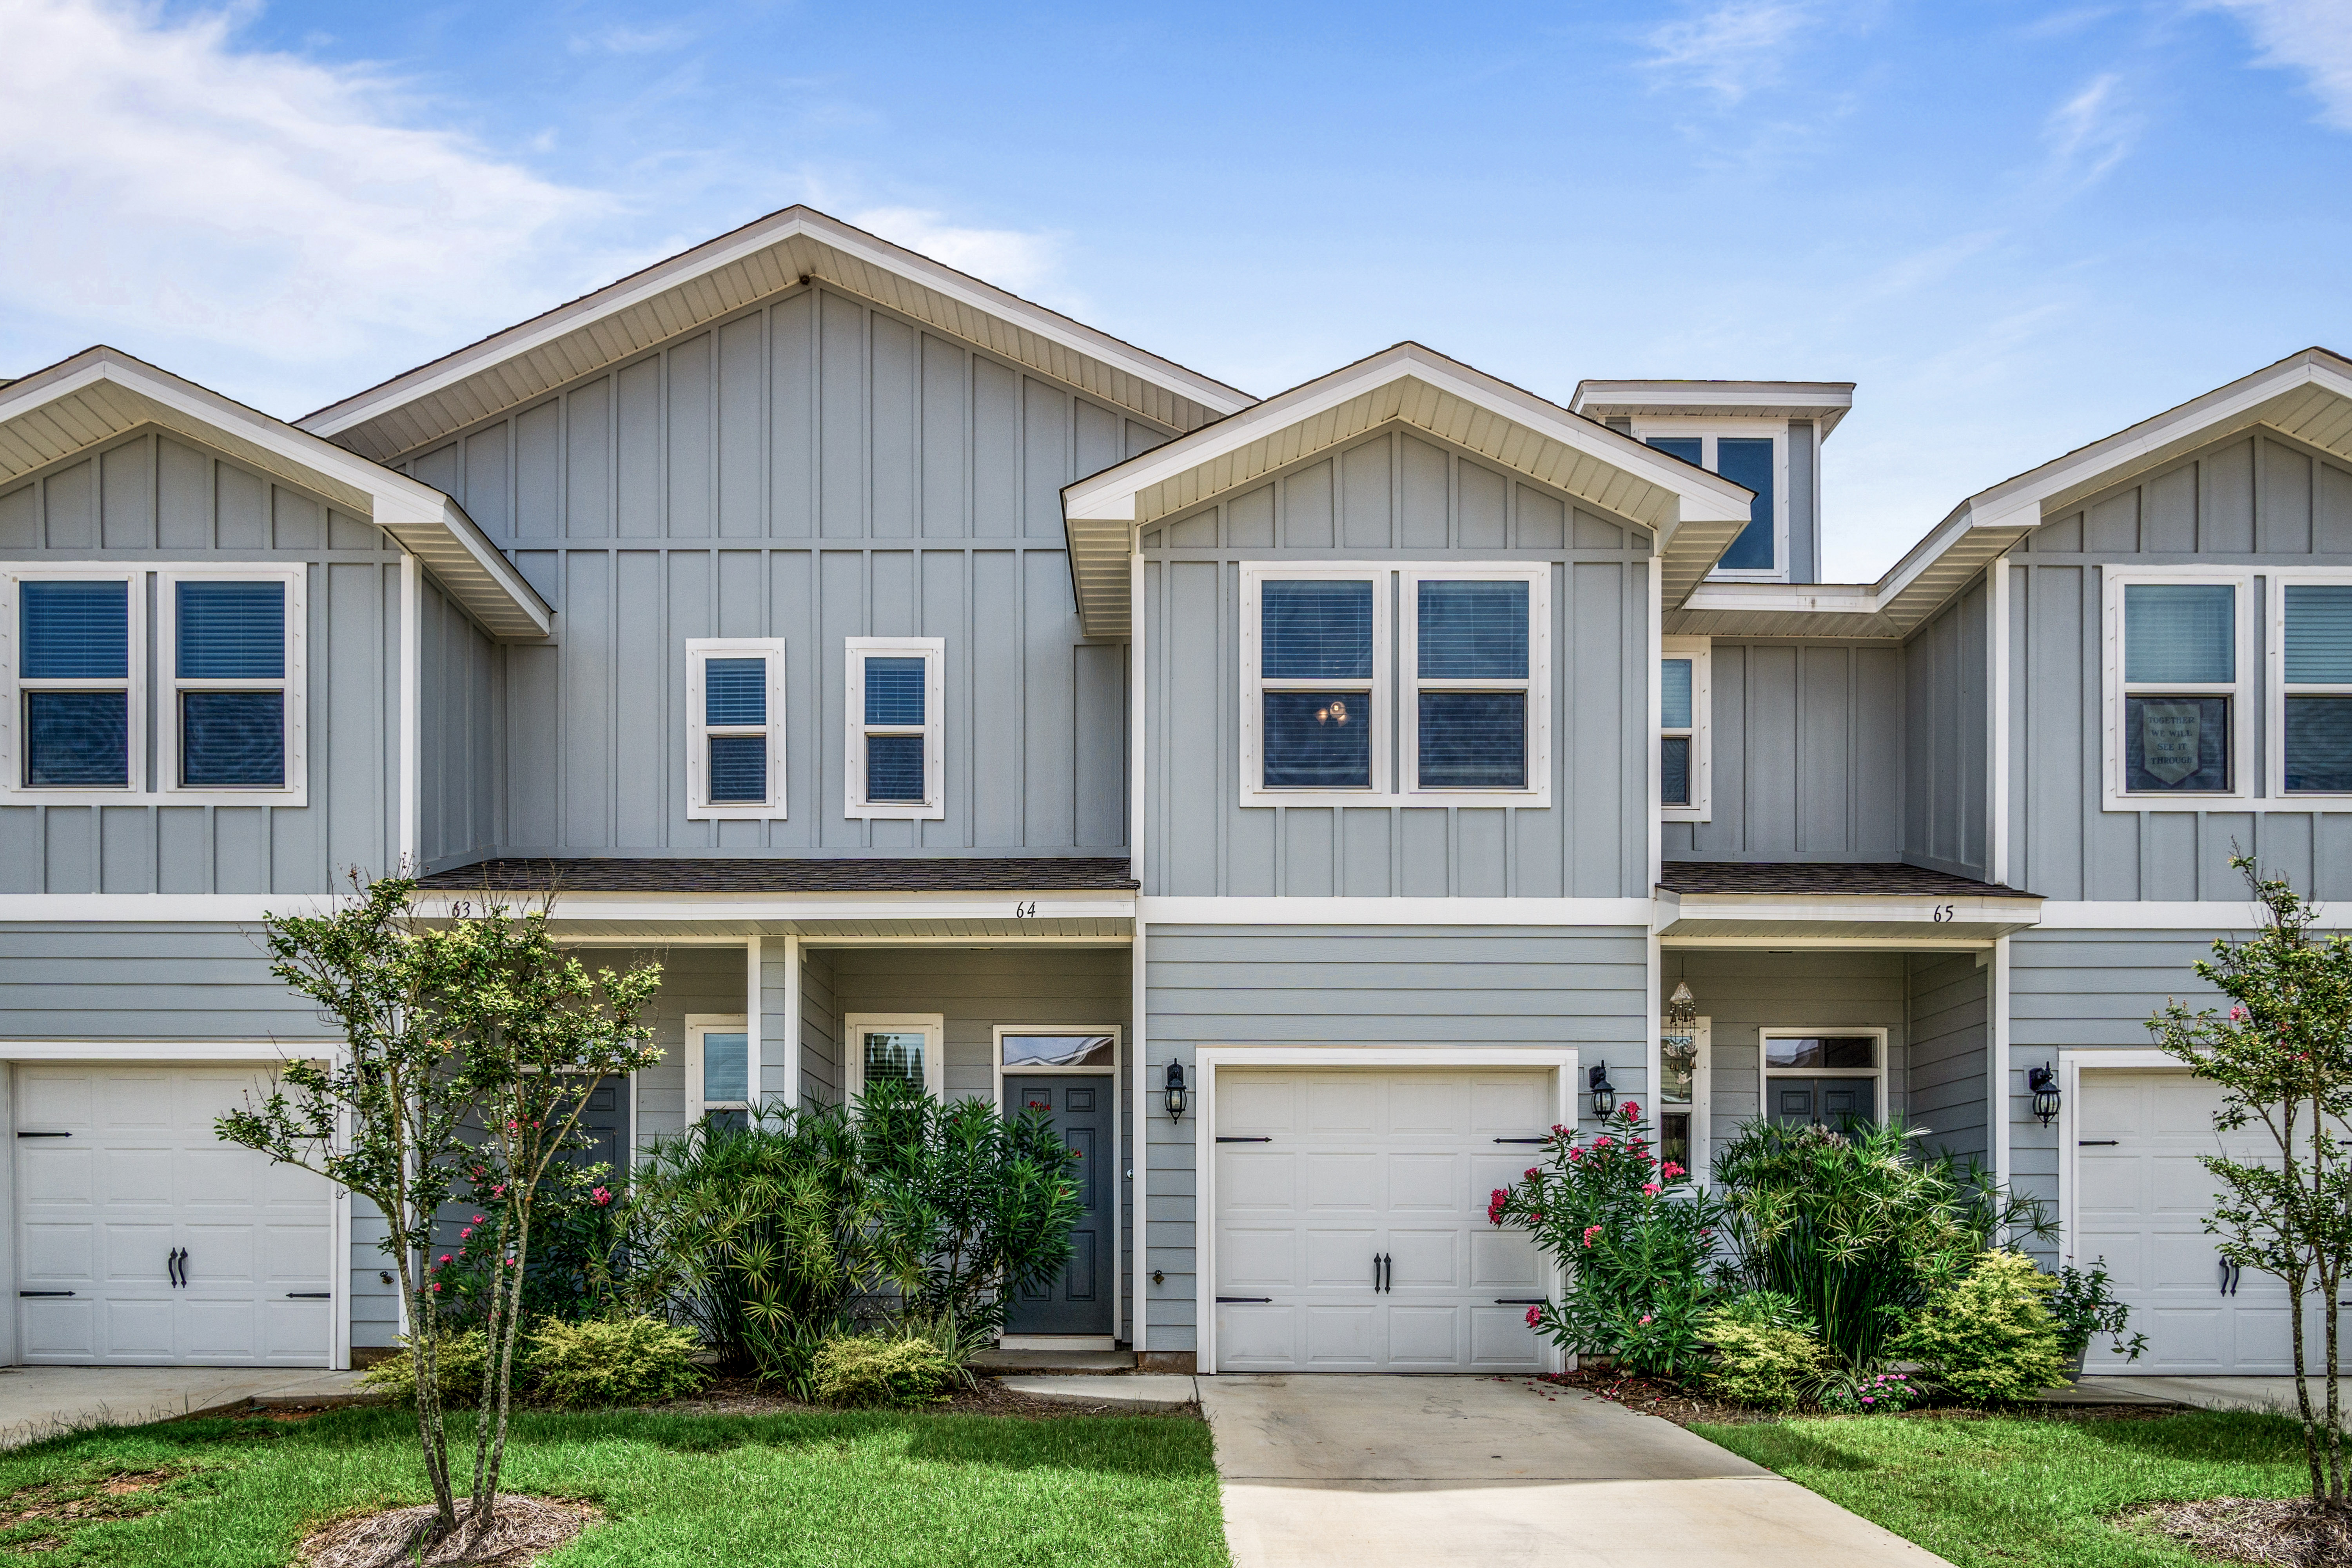 AVAILABLE FOR OCT MOVE IN! 3 BED/2.5 BATH CONDO IN DAPHNE!